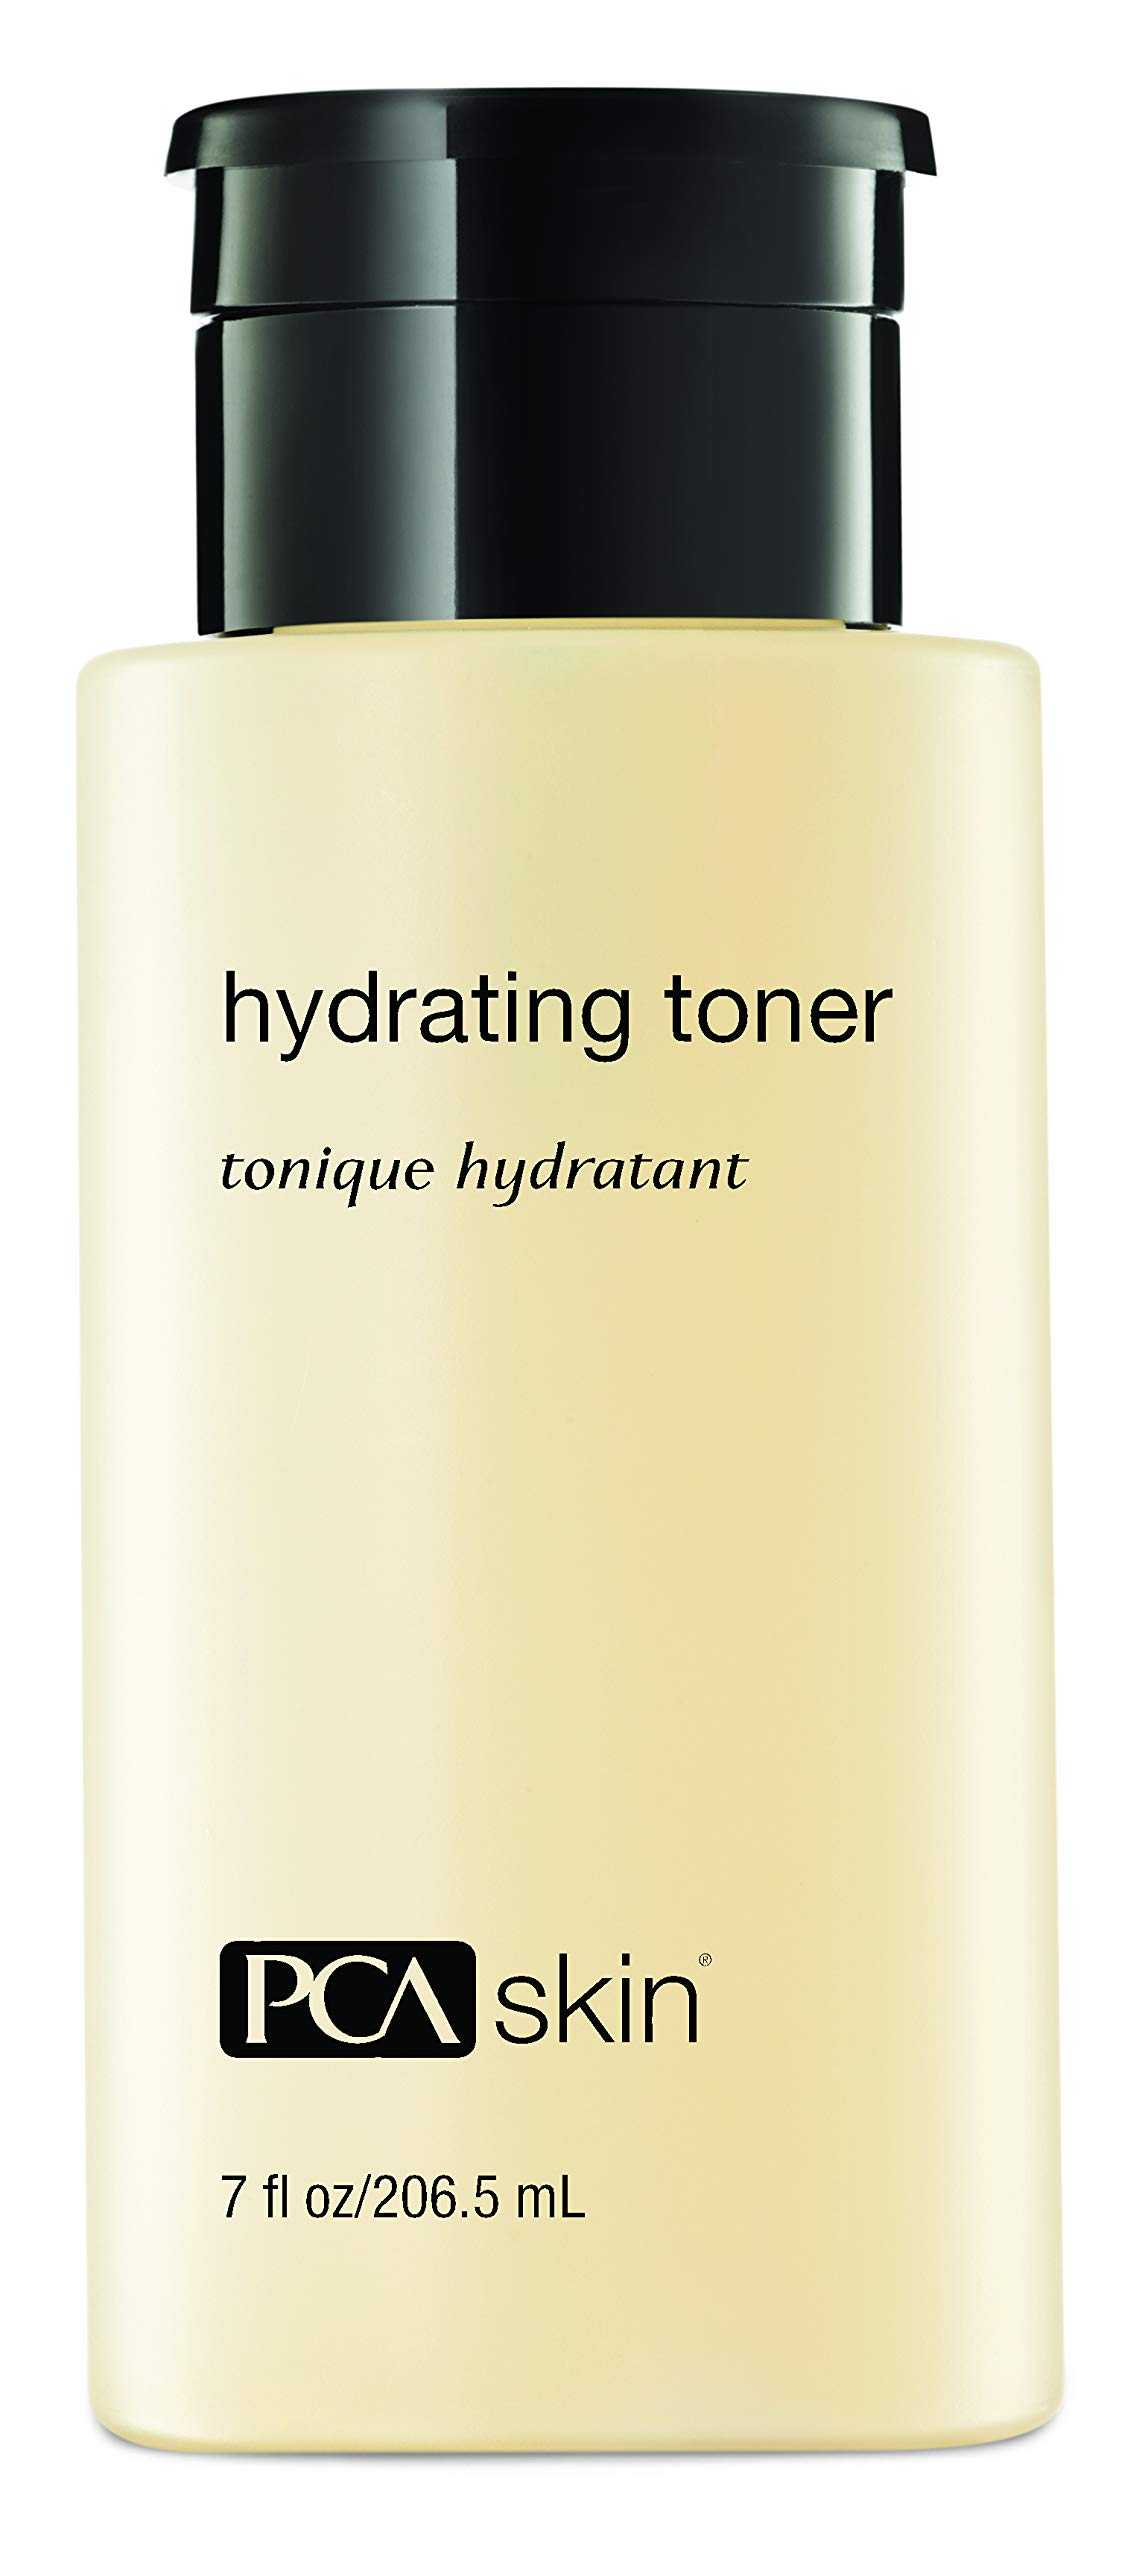 PCA SKIN Hydrating Toner, Alcohol Free, 7 fluid ounce by PCA SKIN